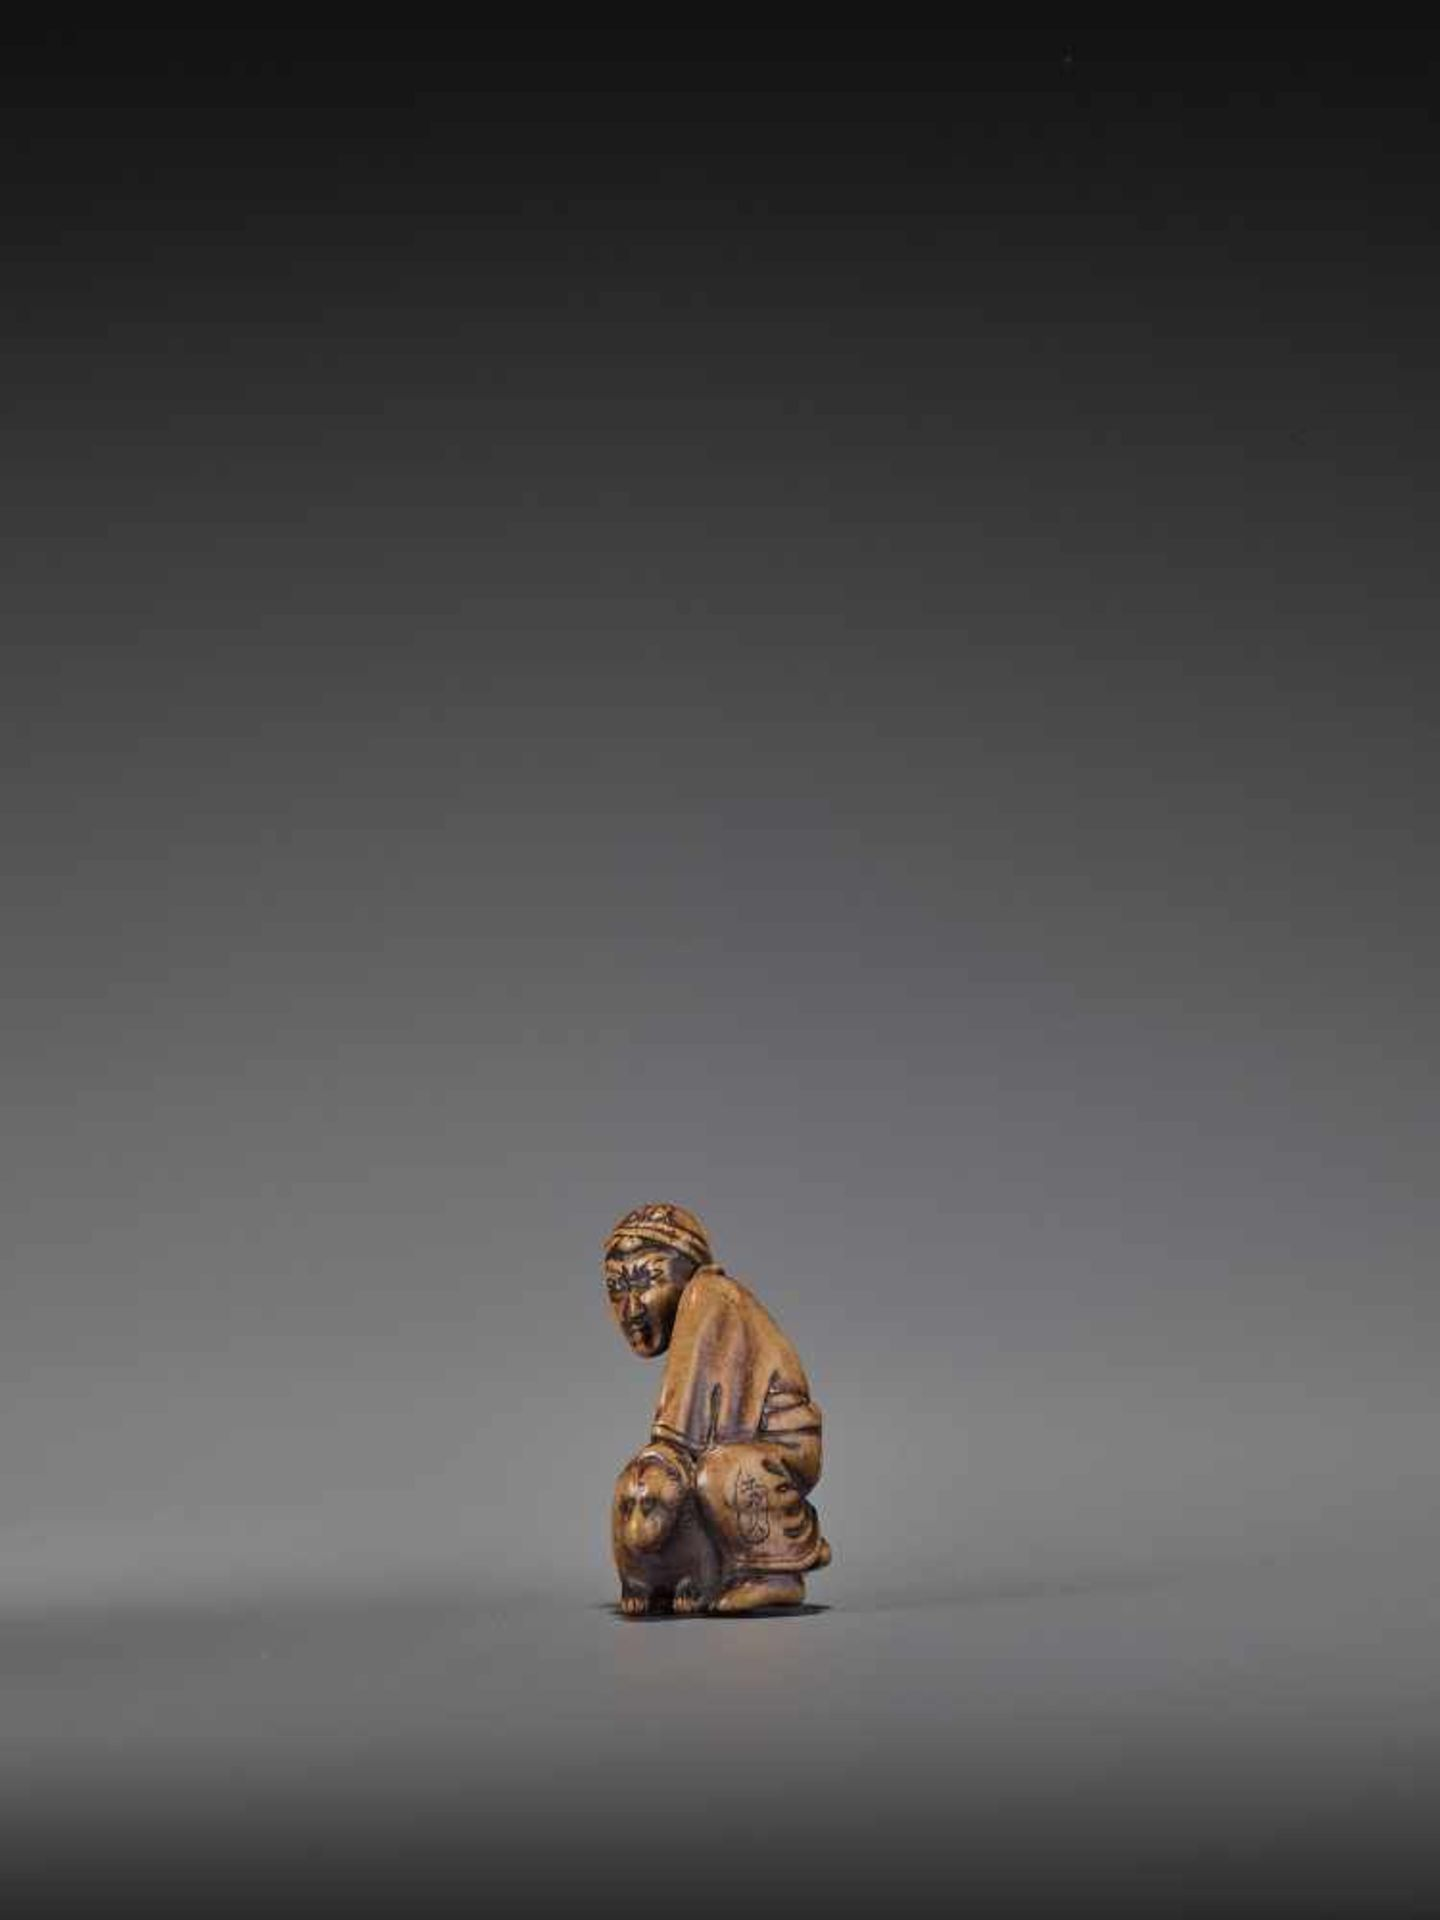 HIDEHISA: A RARE WOOD NETSUKE OF A THIEF STEALING THE MAGIC TANUKI KETTLE By Hidehisa, signed - Image 5 of 12